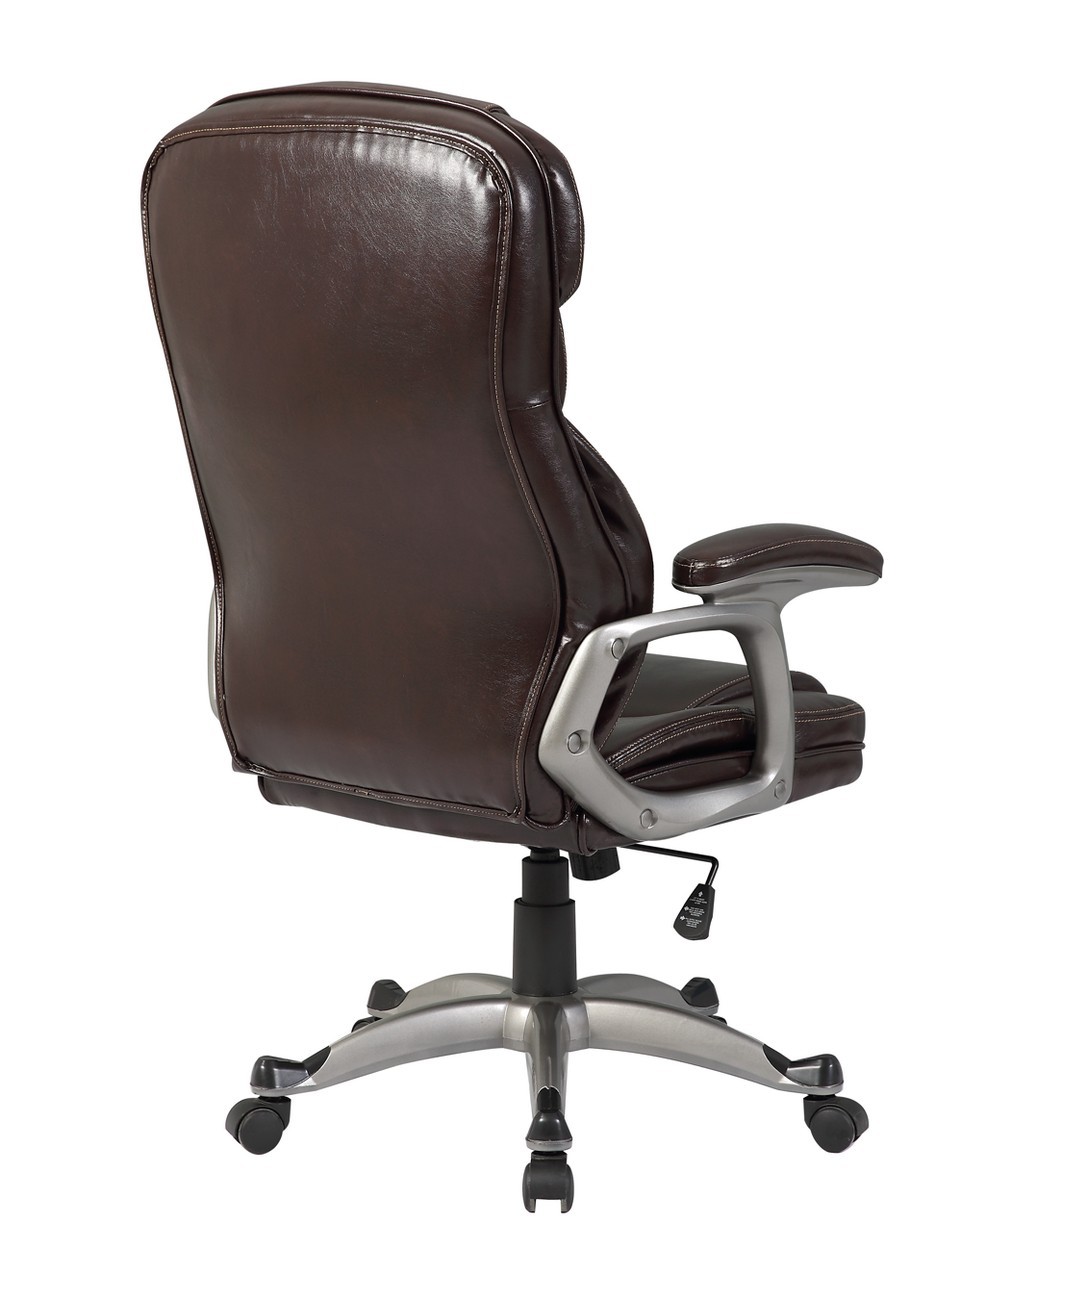 computer chair back 3 in one high executive office pu leather ergonomic desk